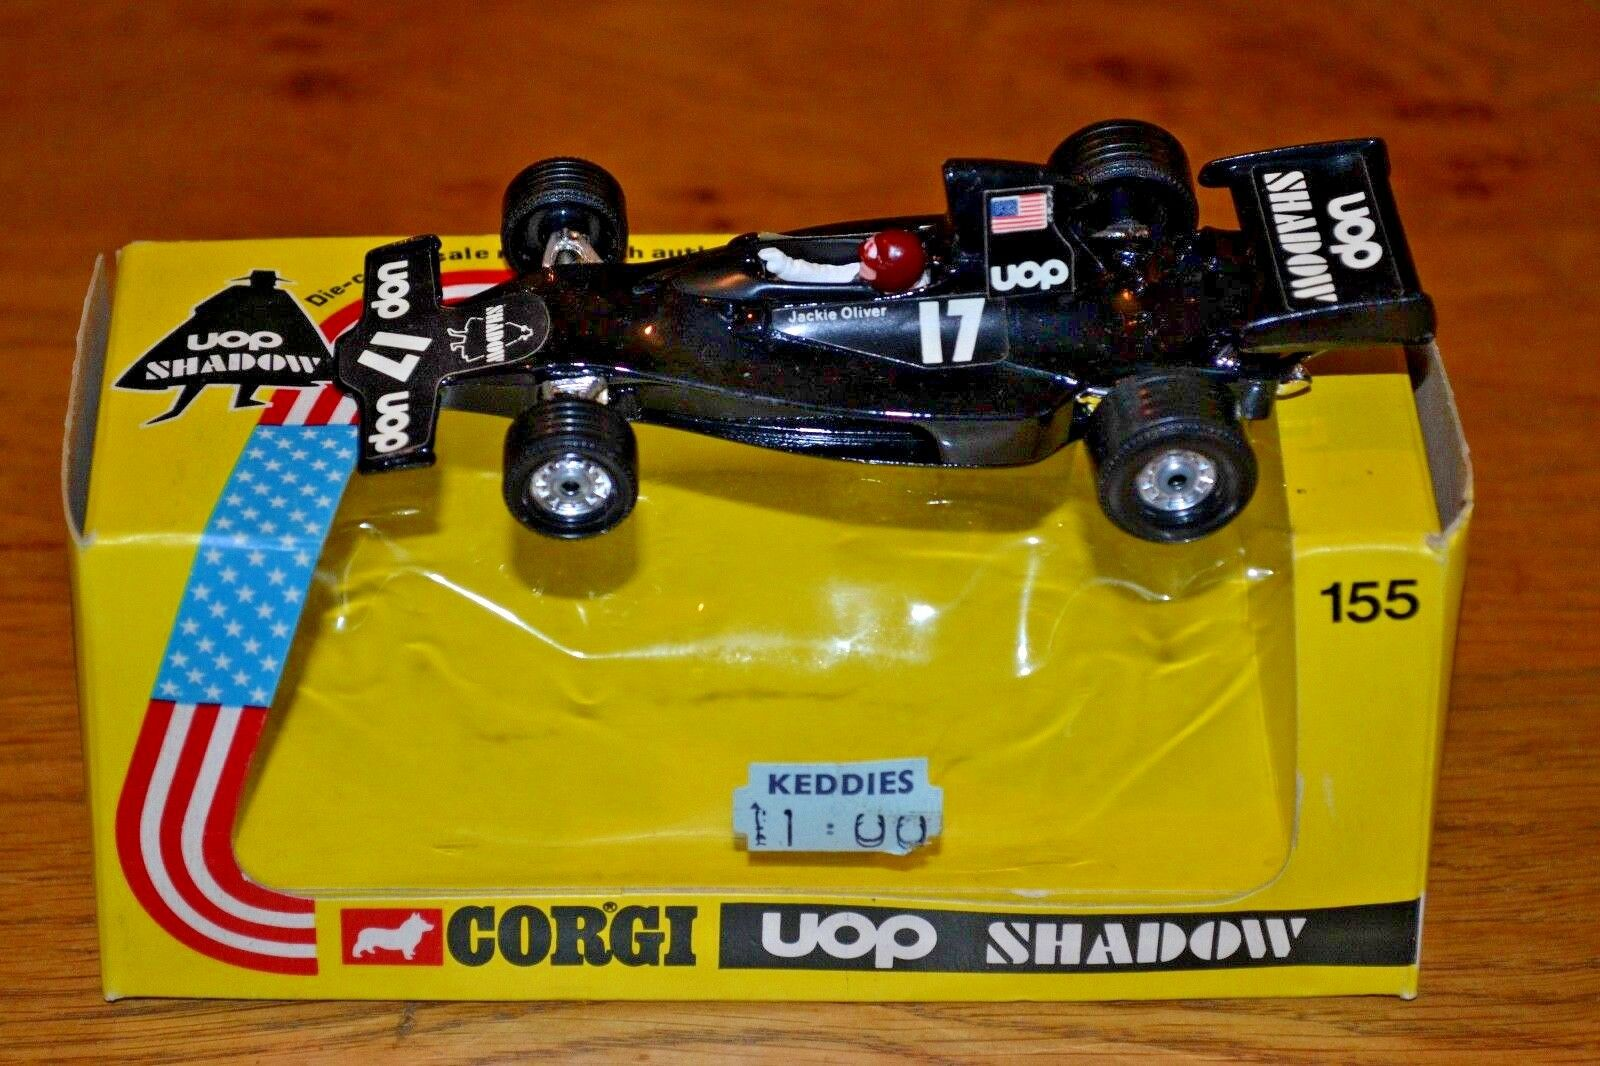 Vintage Corgi Shadow Ford Formula 1 Car; Near Mint Condition; Original Box